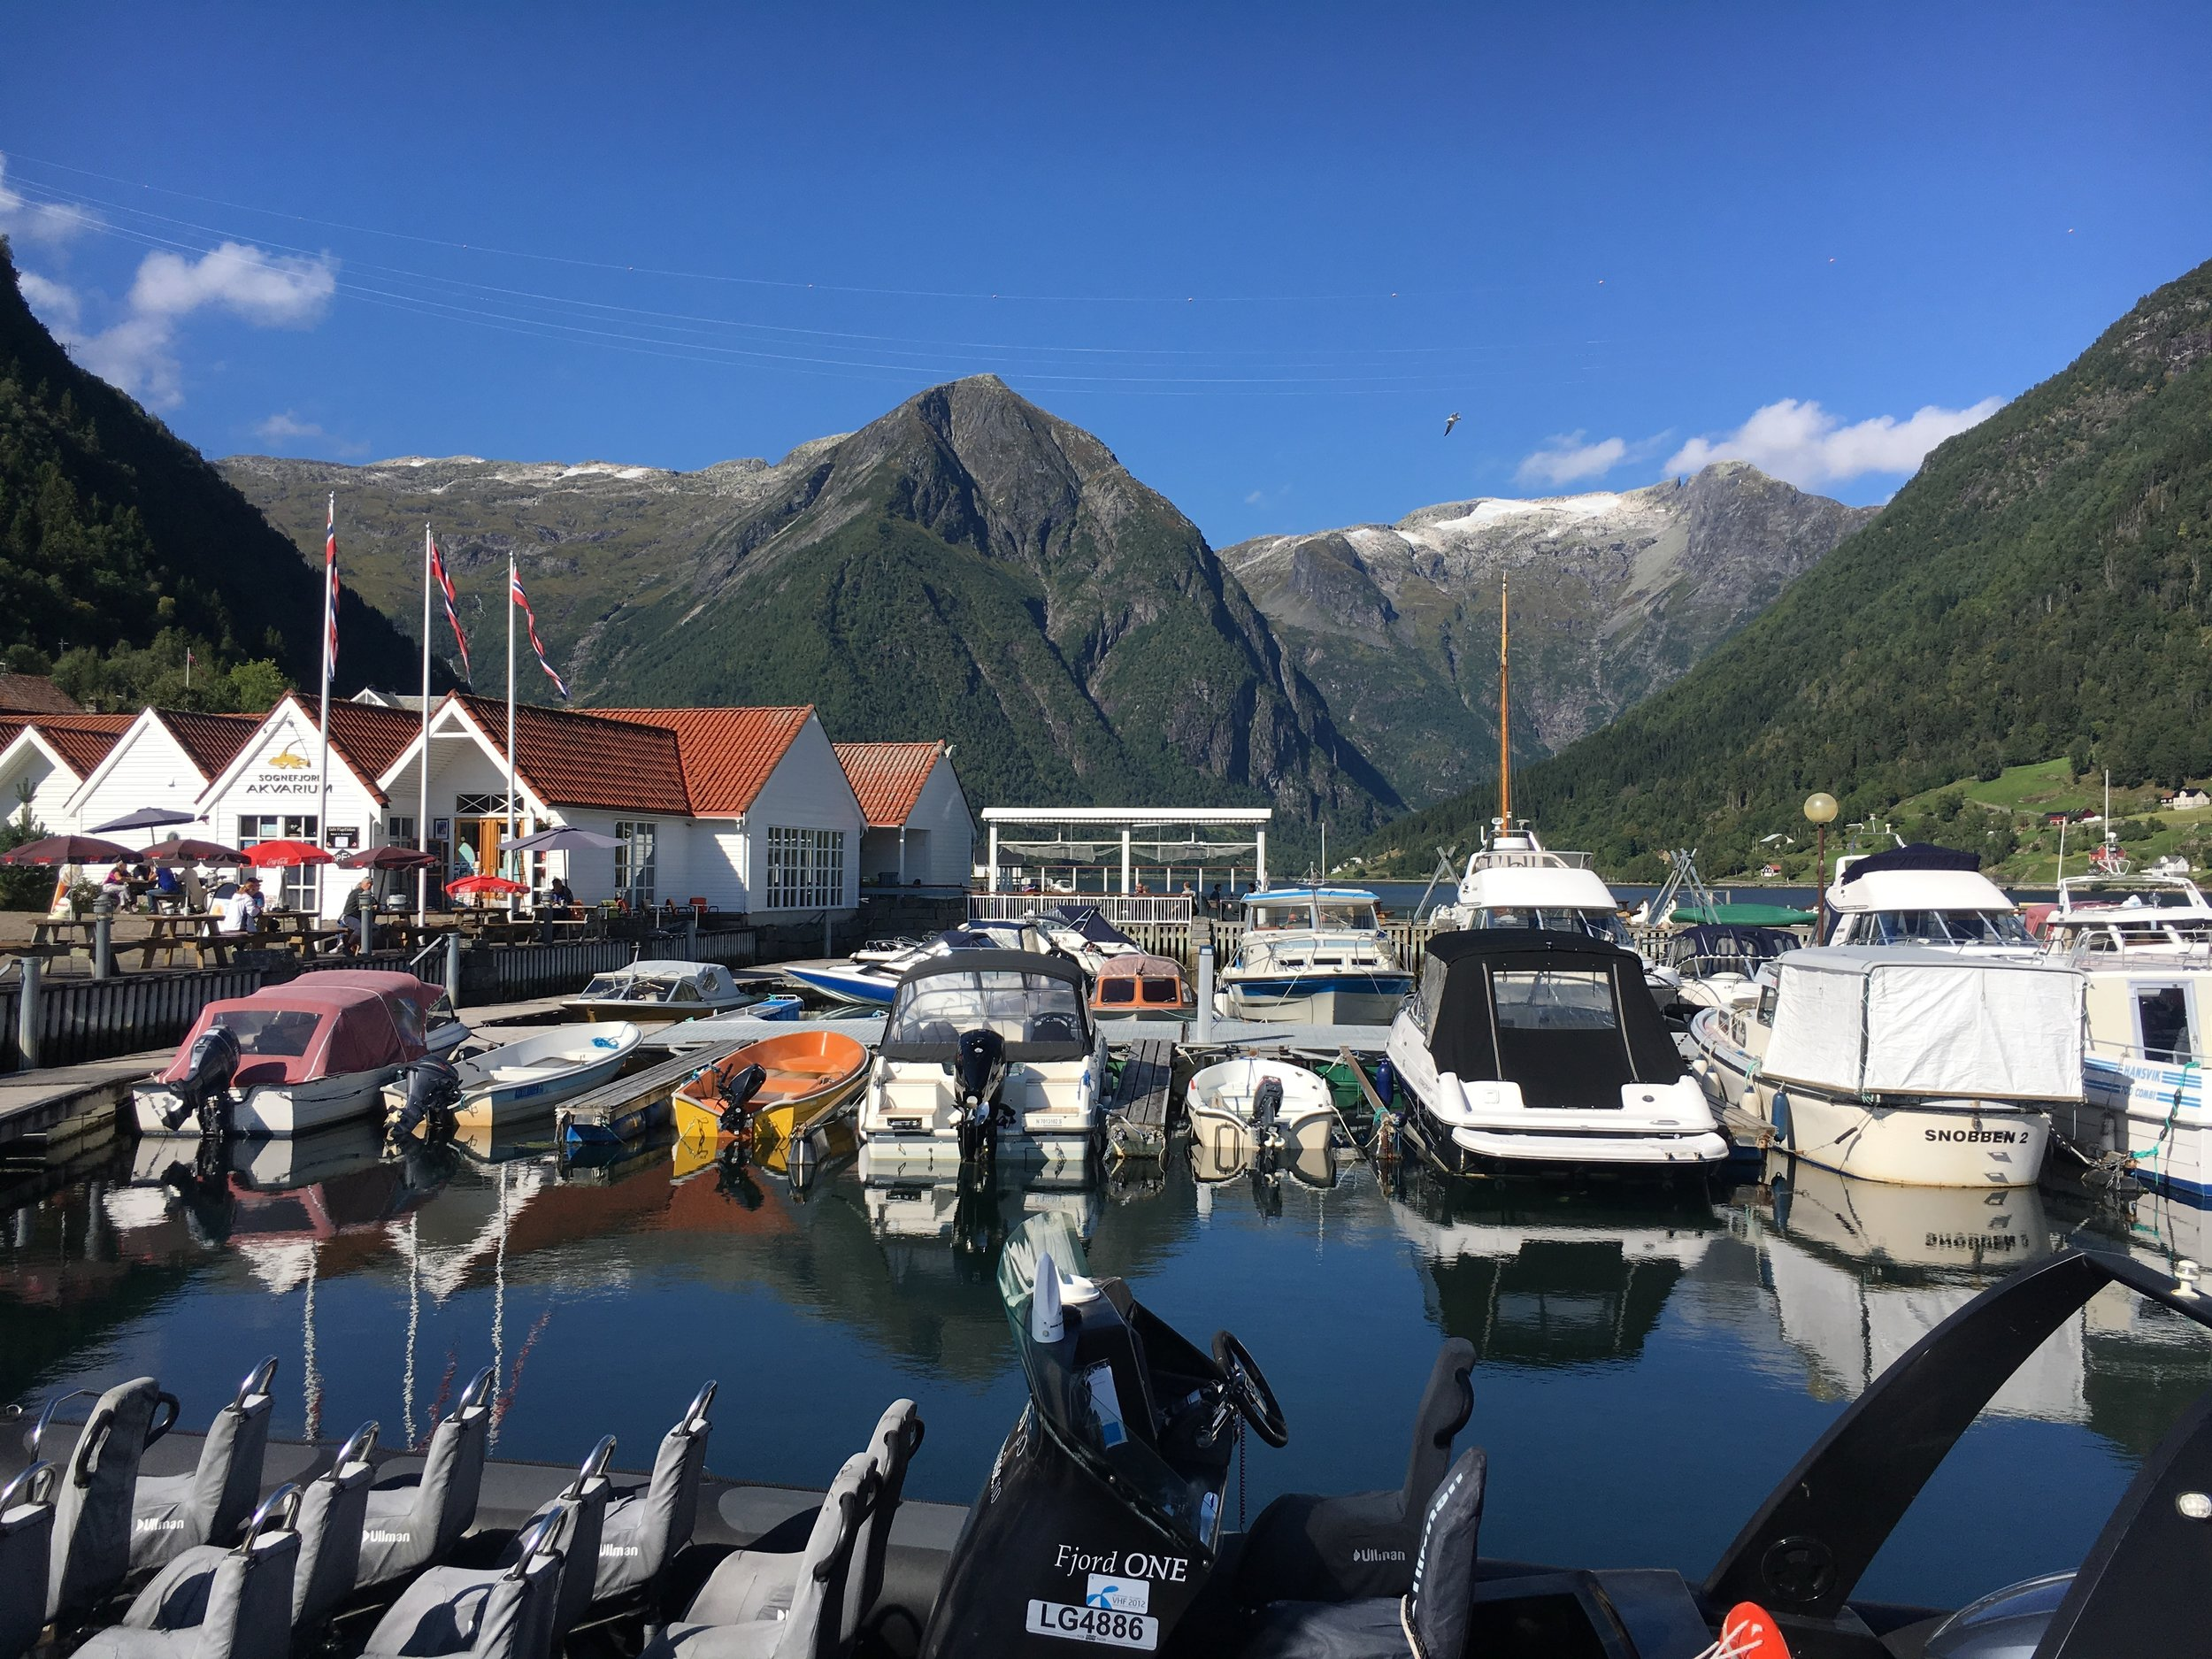 The view from the pier in Balestrand